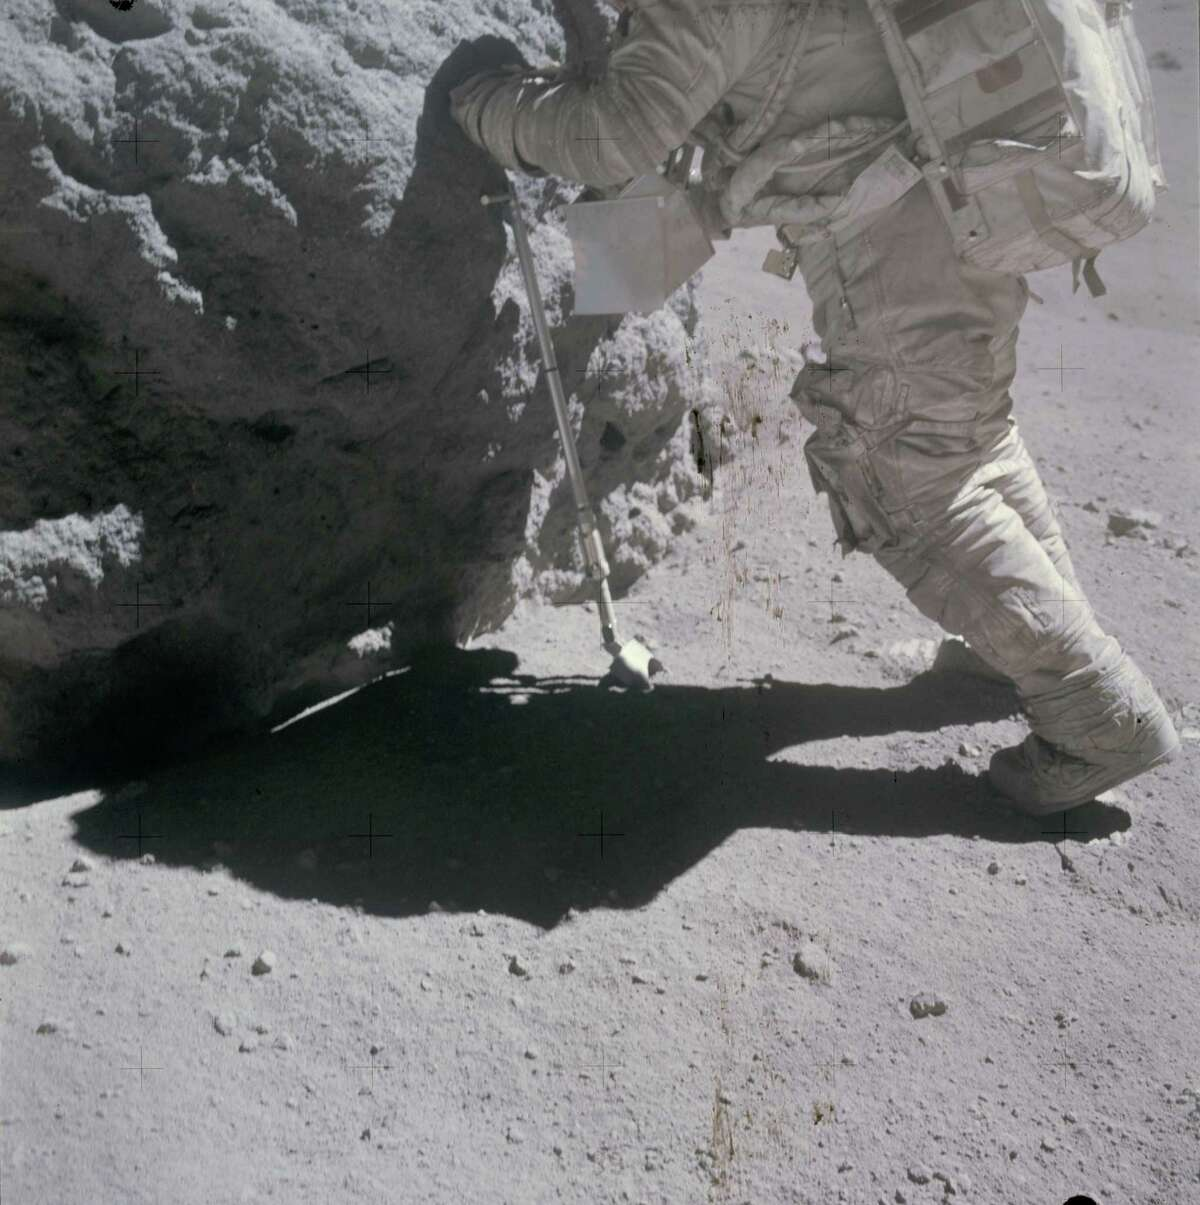 """Astronaut Charles M. Duke Jr., lunar module pilot, works at the """"Shadow Rock"""", discovered during the missions third extravehicular activity (EVA) in the area of North Ray Crater (Station 13) on April 23, 1972. The scoop, a geological hand tool, leans against the rock. This view was exposed by astronaut John W. Young, commander. The two moon-exploring crew men sampled this rock, which got its name because of a permanently shadowed area it protected."""